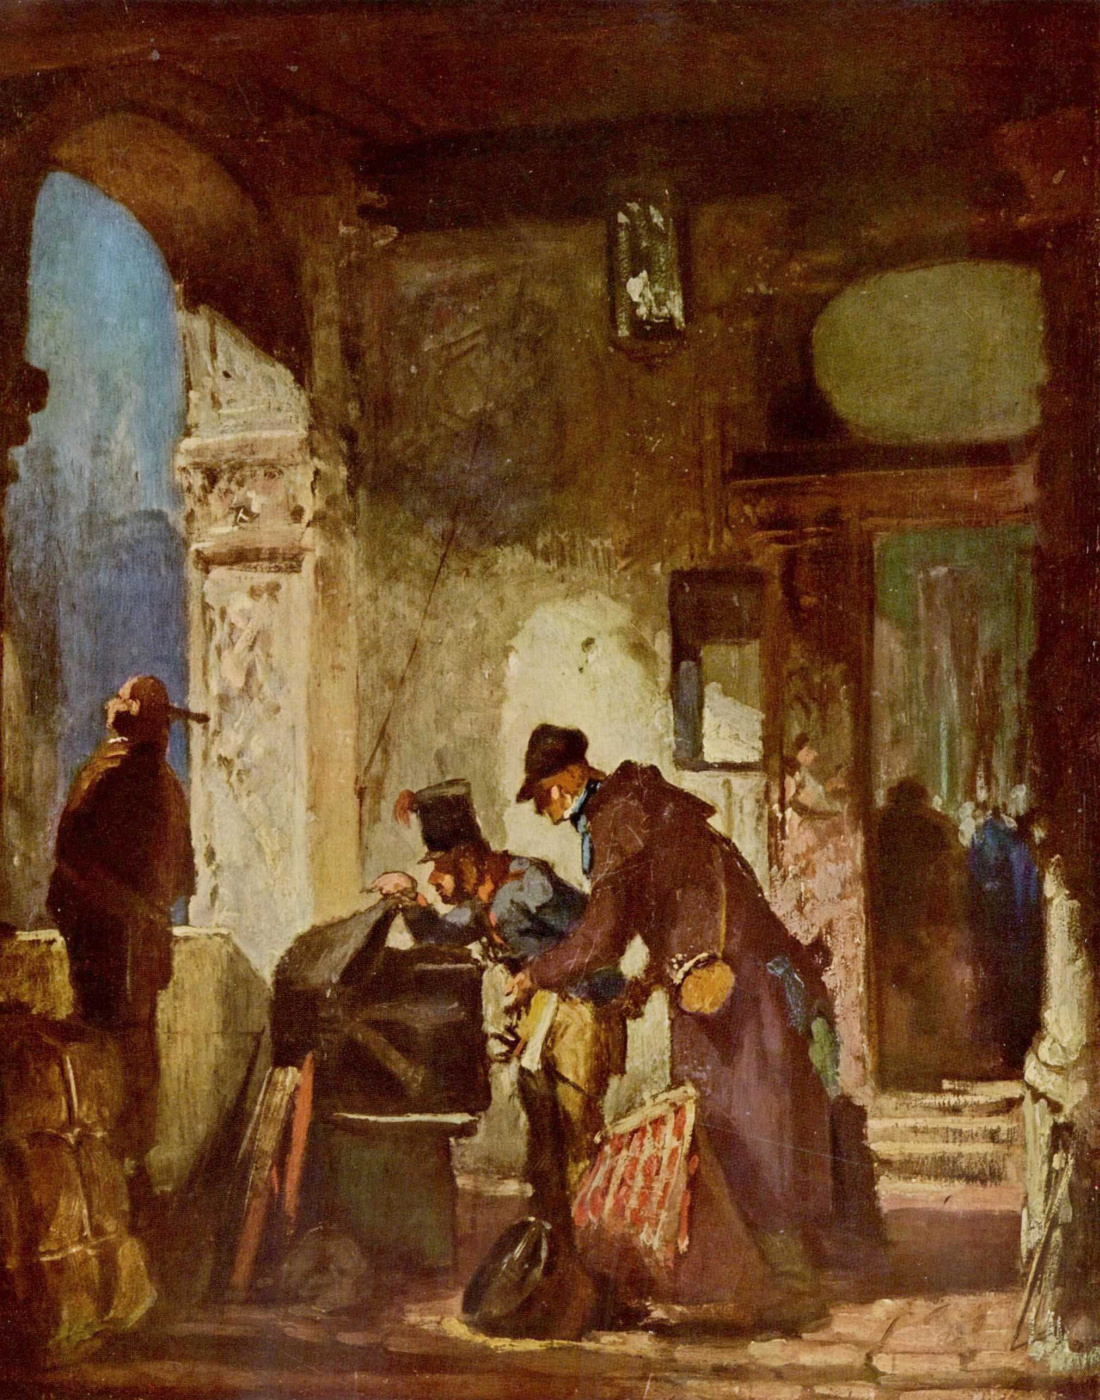 Karl Spitzweg. The papal customs officers